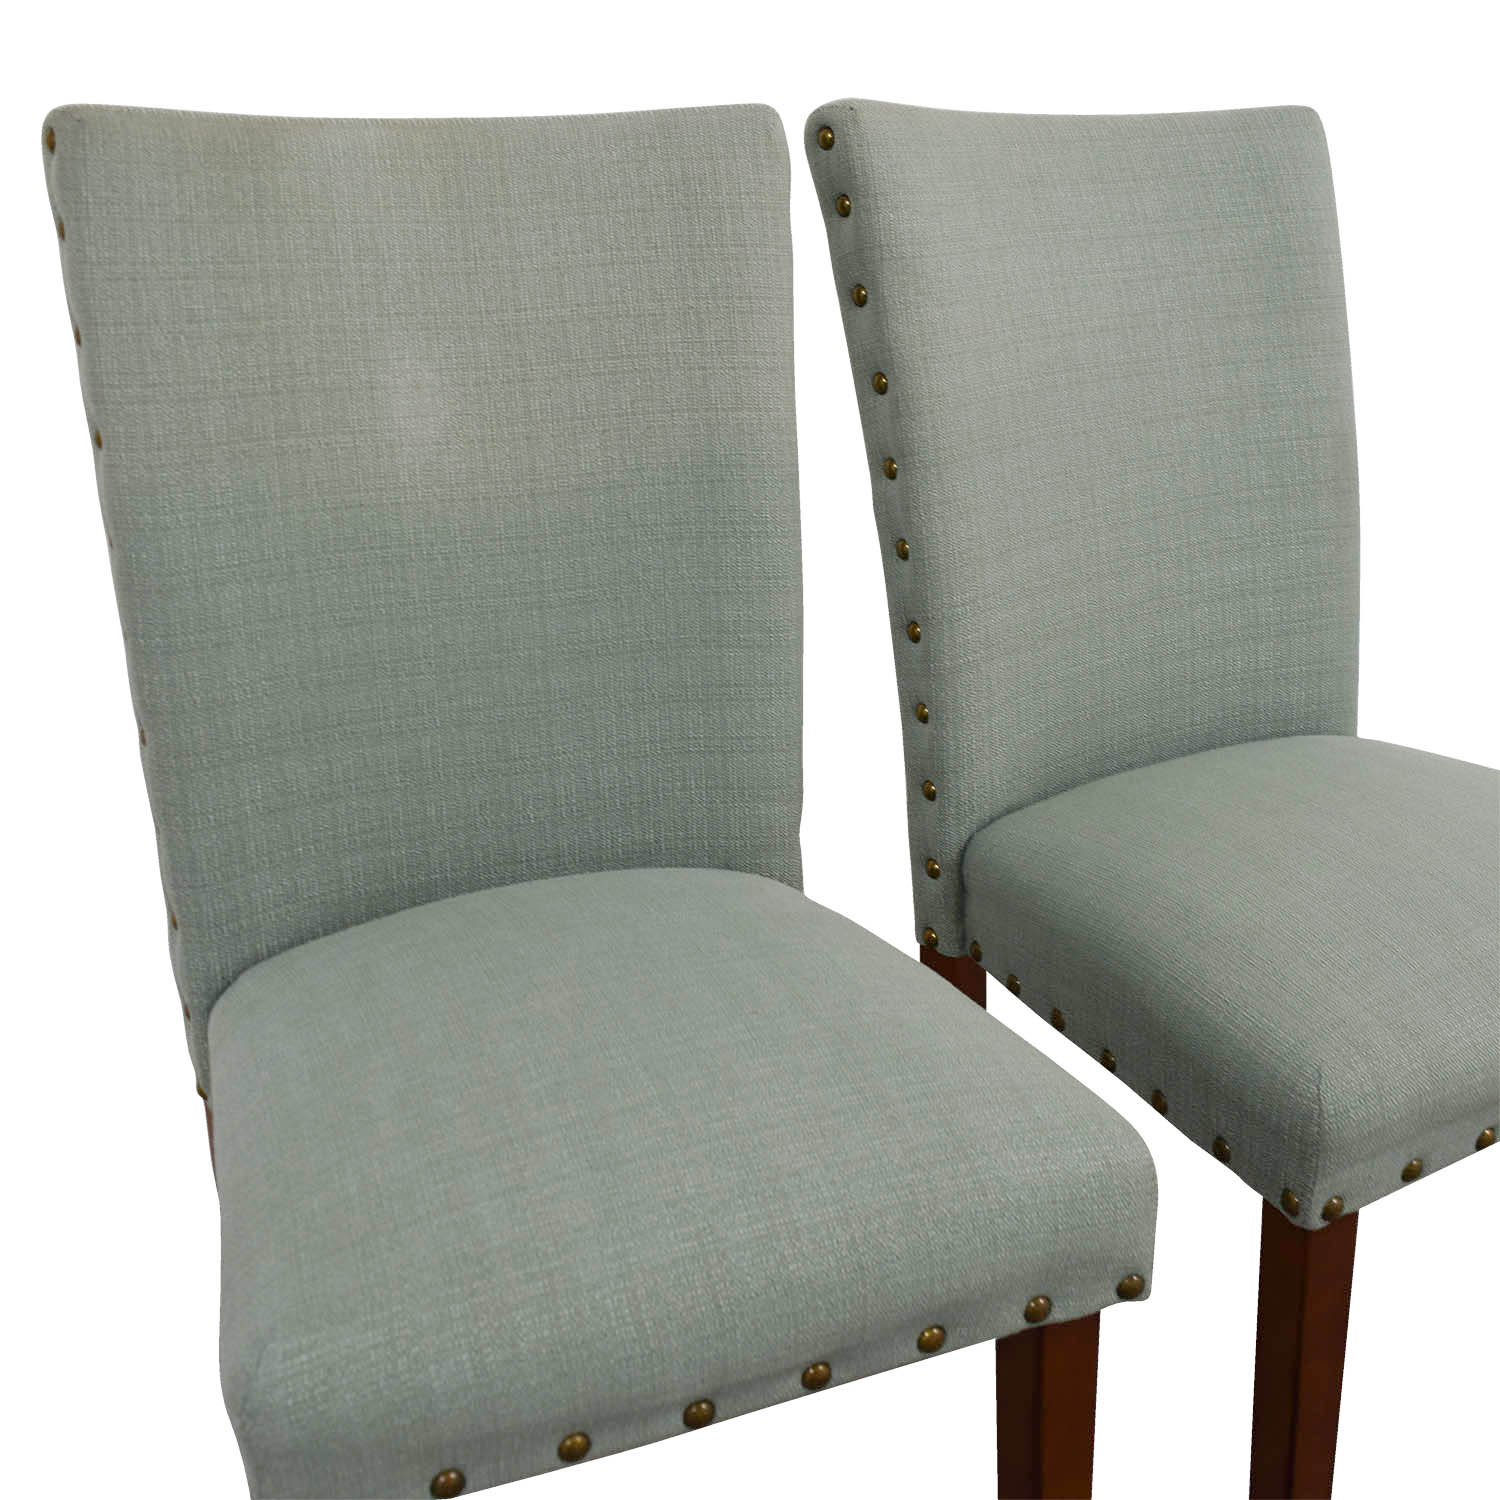 Seafoam Upholstered Nailhead Chairs / Accent Chairs